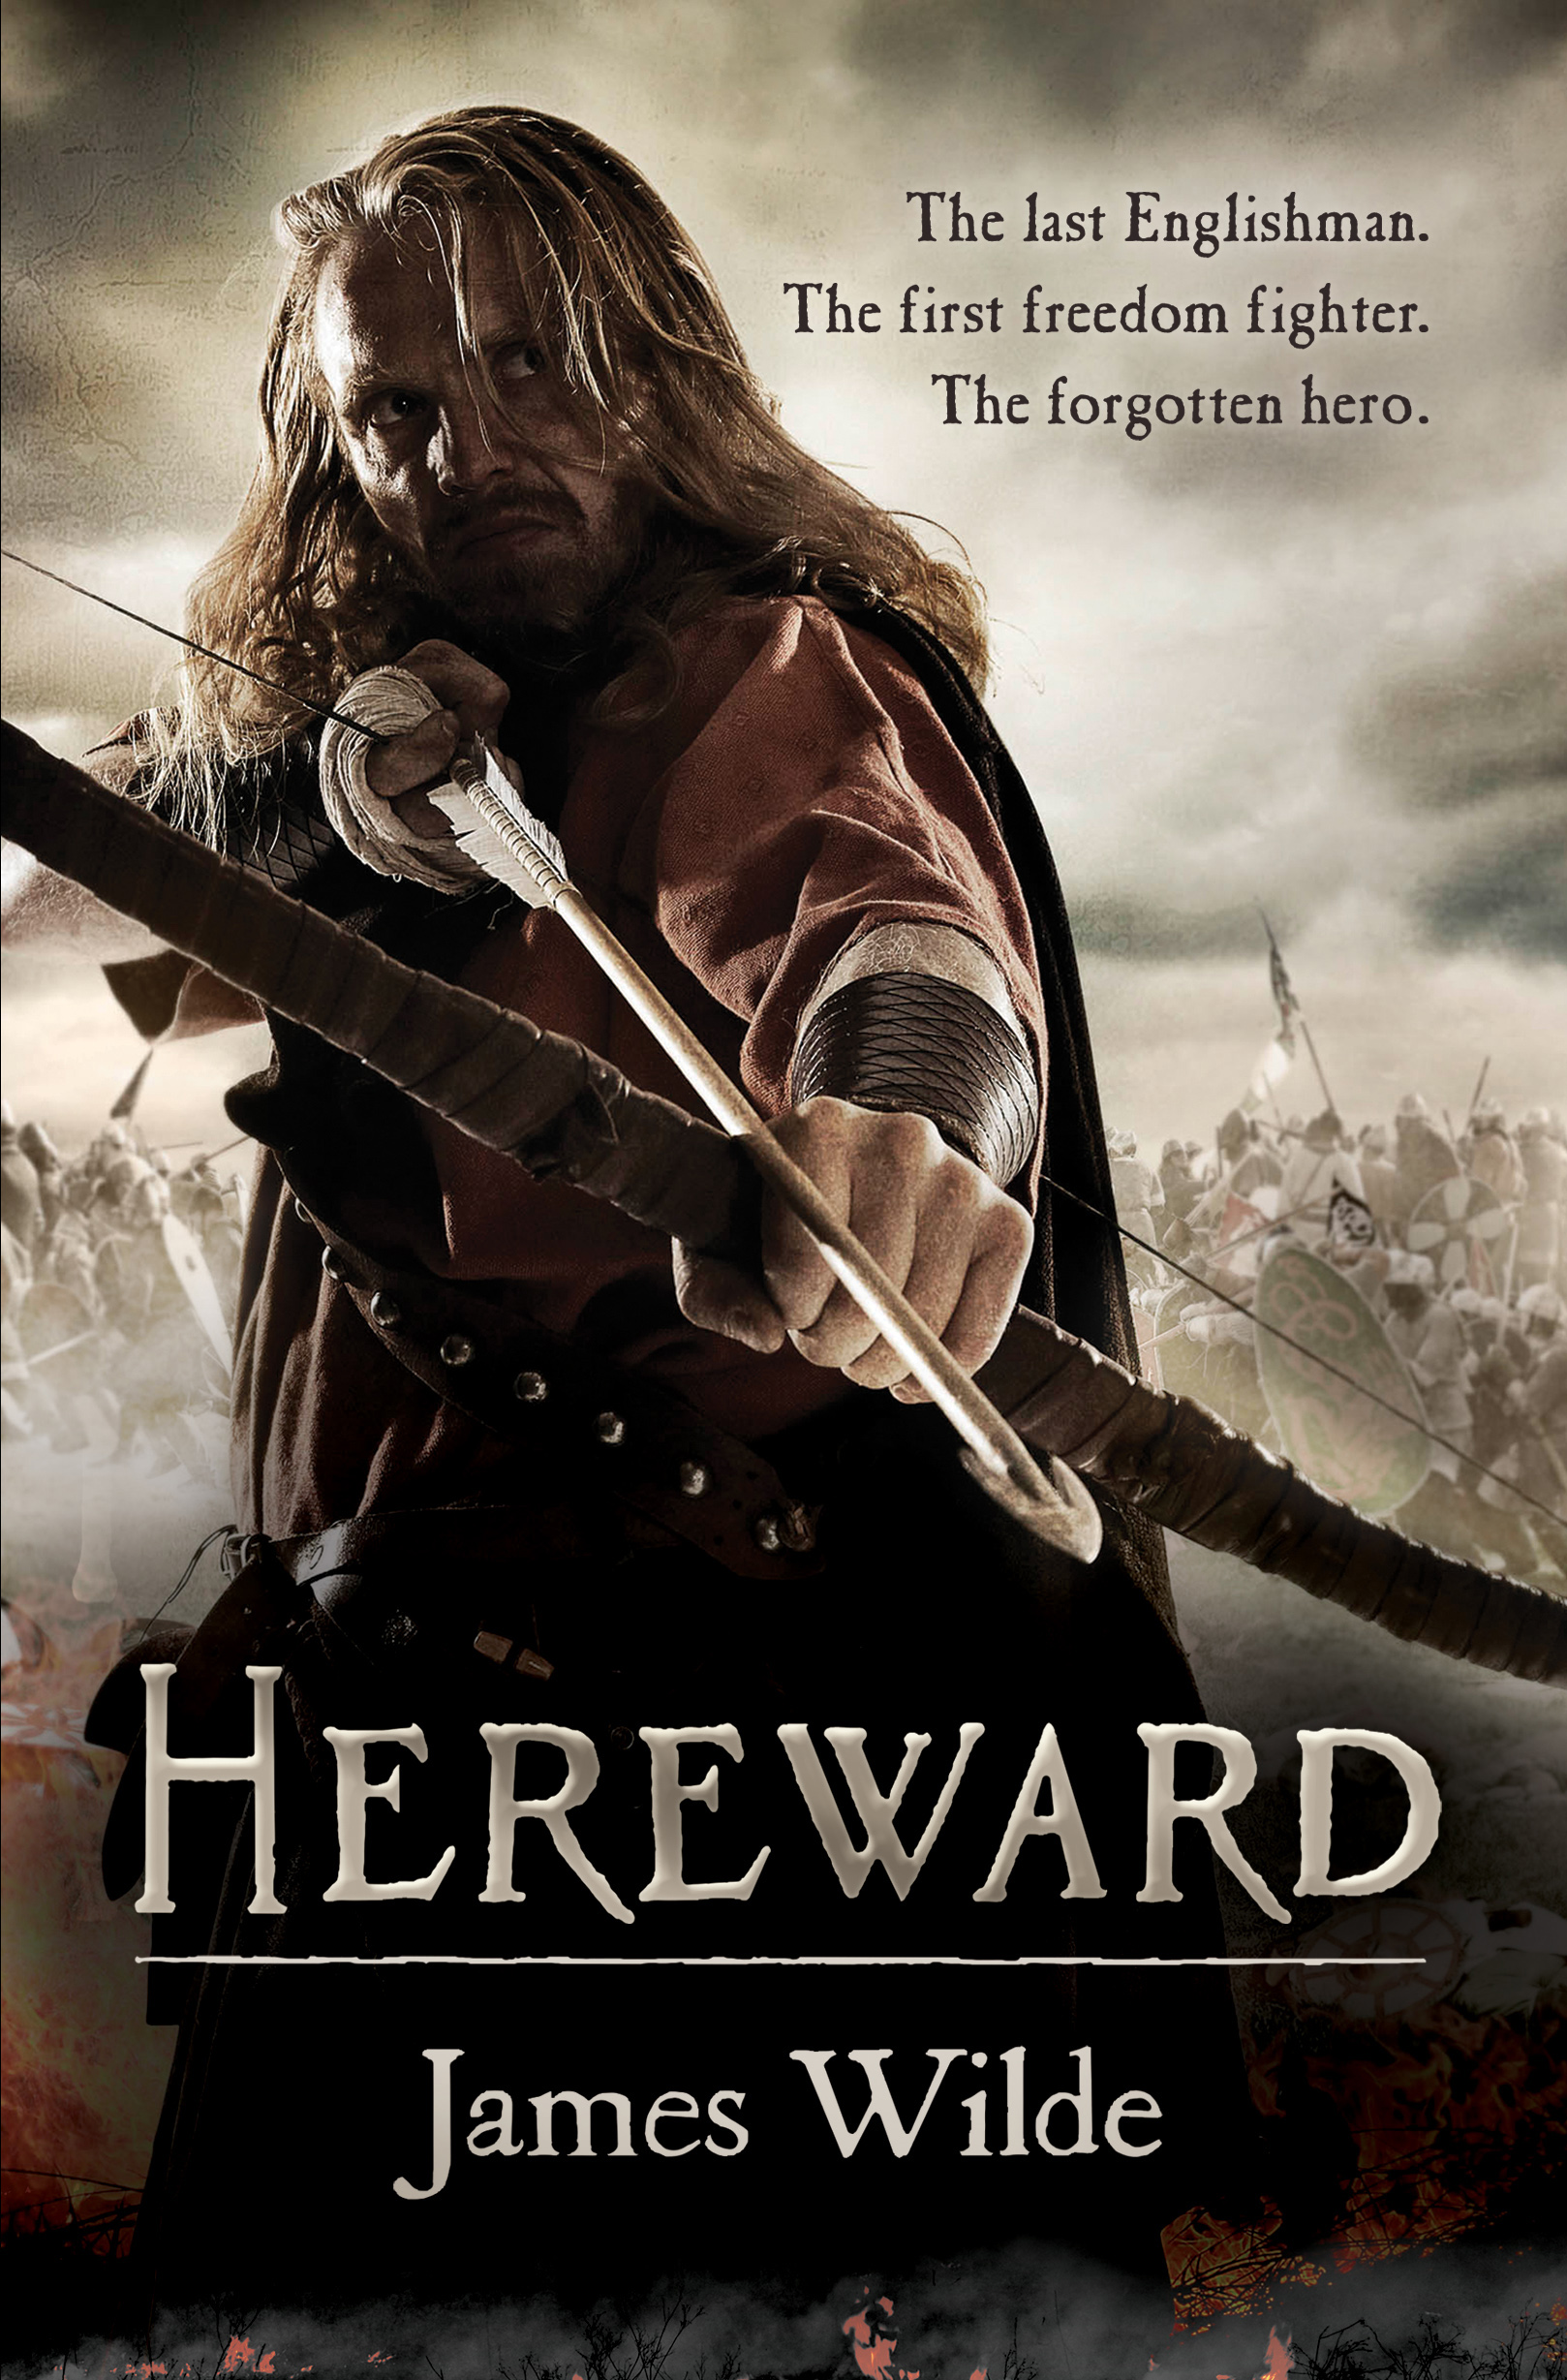 HEREWARD James Wilde